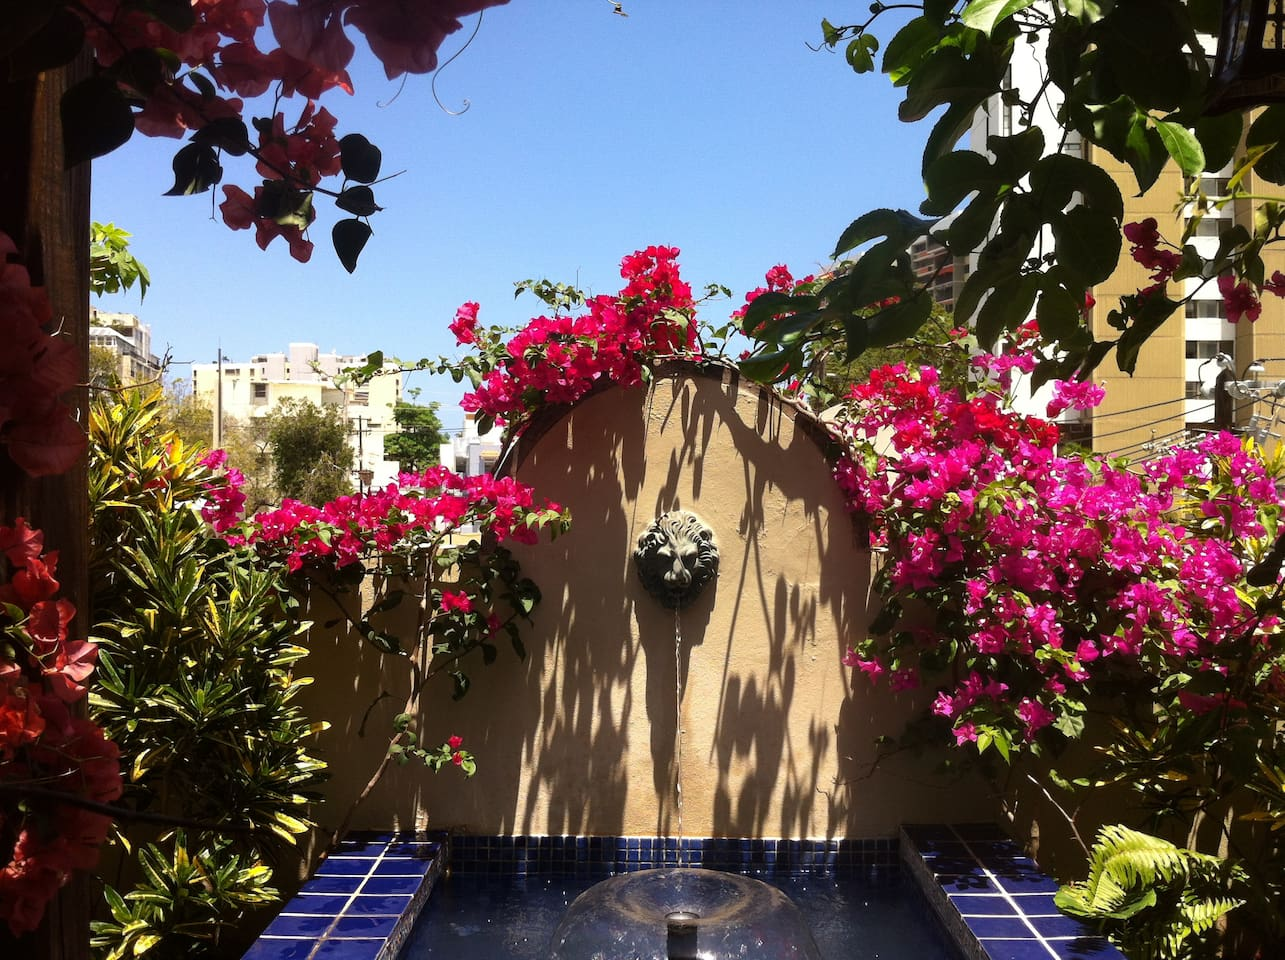 Relax with the sounds of the fountain surrounded by bougainvillea and tropical plants.